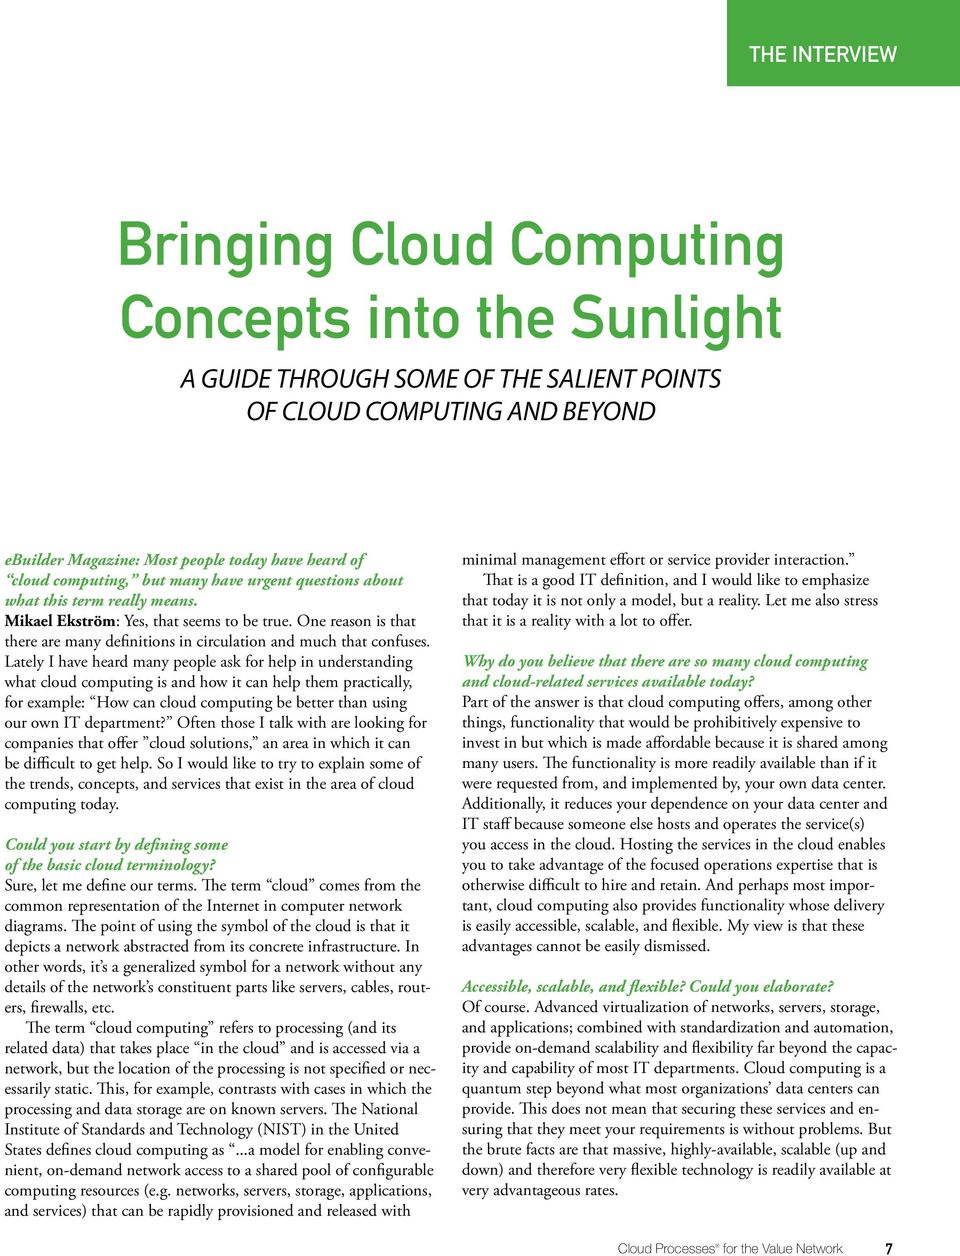 Lately I have heard many people ask for help in understanding what cloud computing is and how it can help them practically, for example: How can cloud computing be better than using our own IT